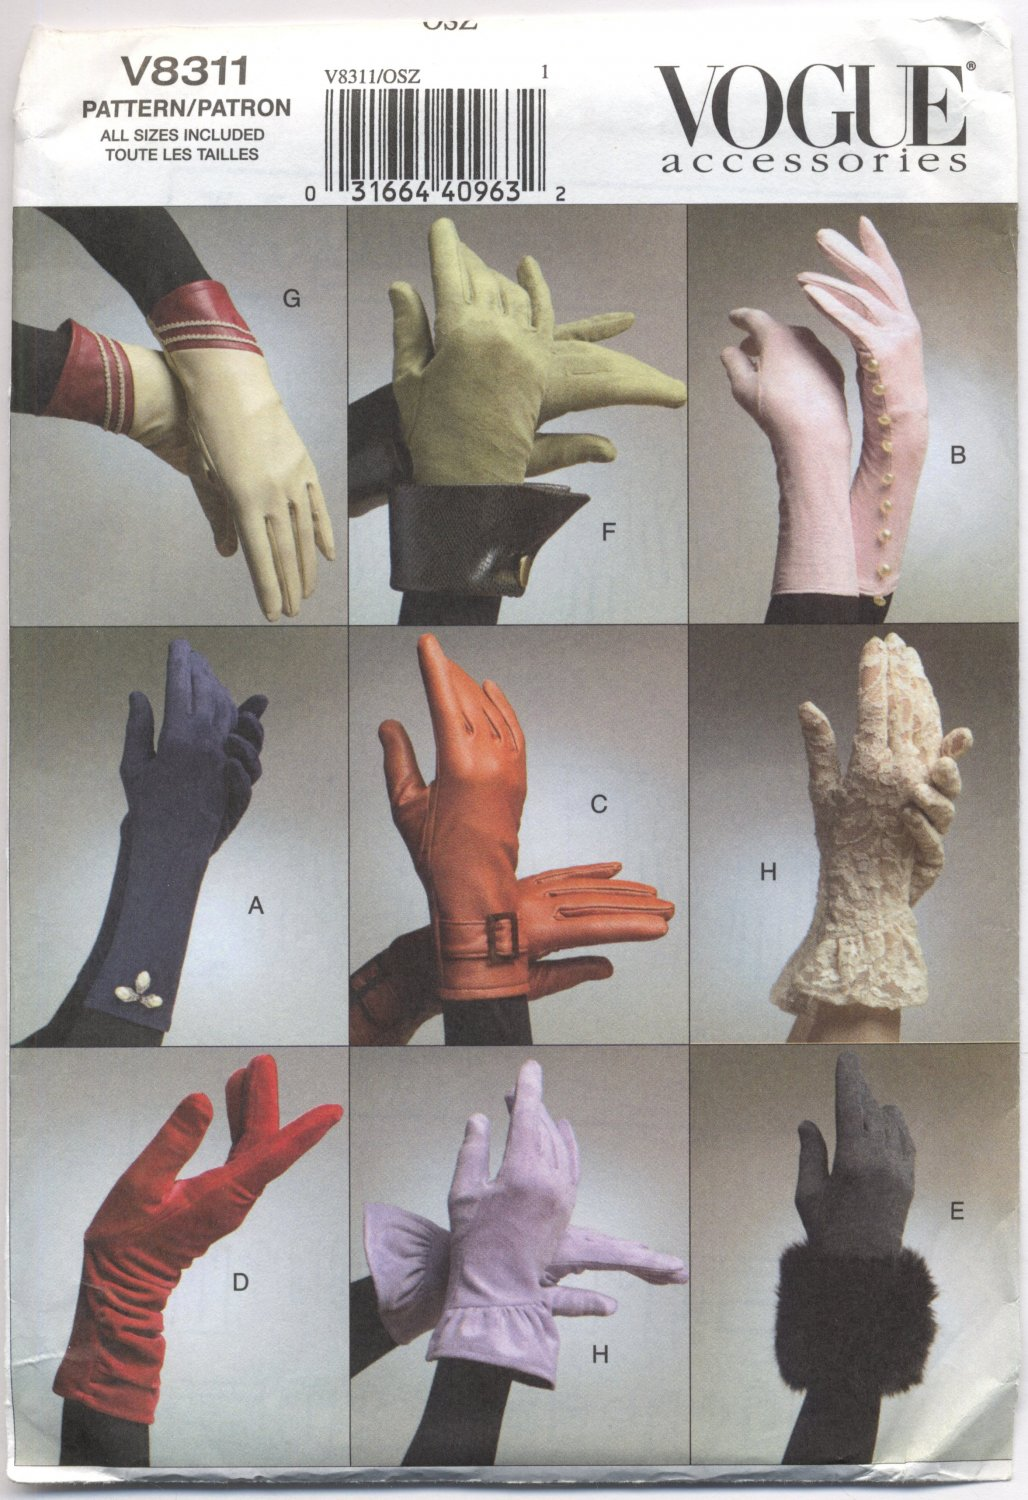 Vogue 8311 Gloves Small Medium Large Accessories Sewing Pattern Chic Gauntlet Formal Casual